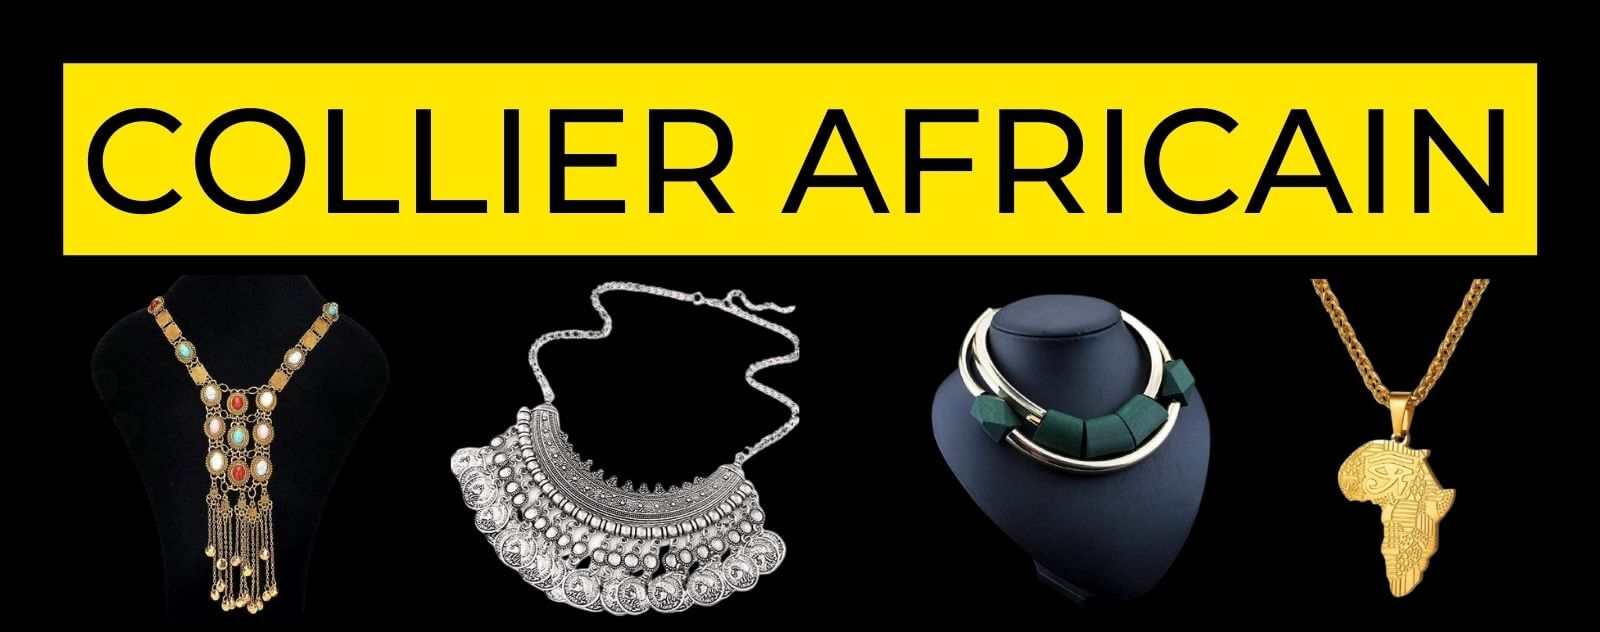 collier africain traditionnel